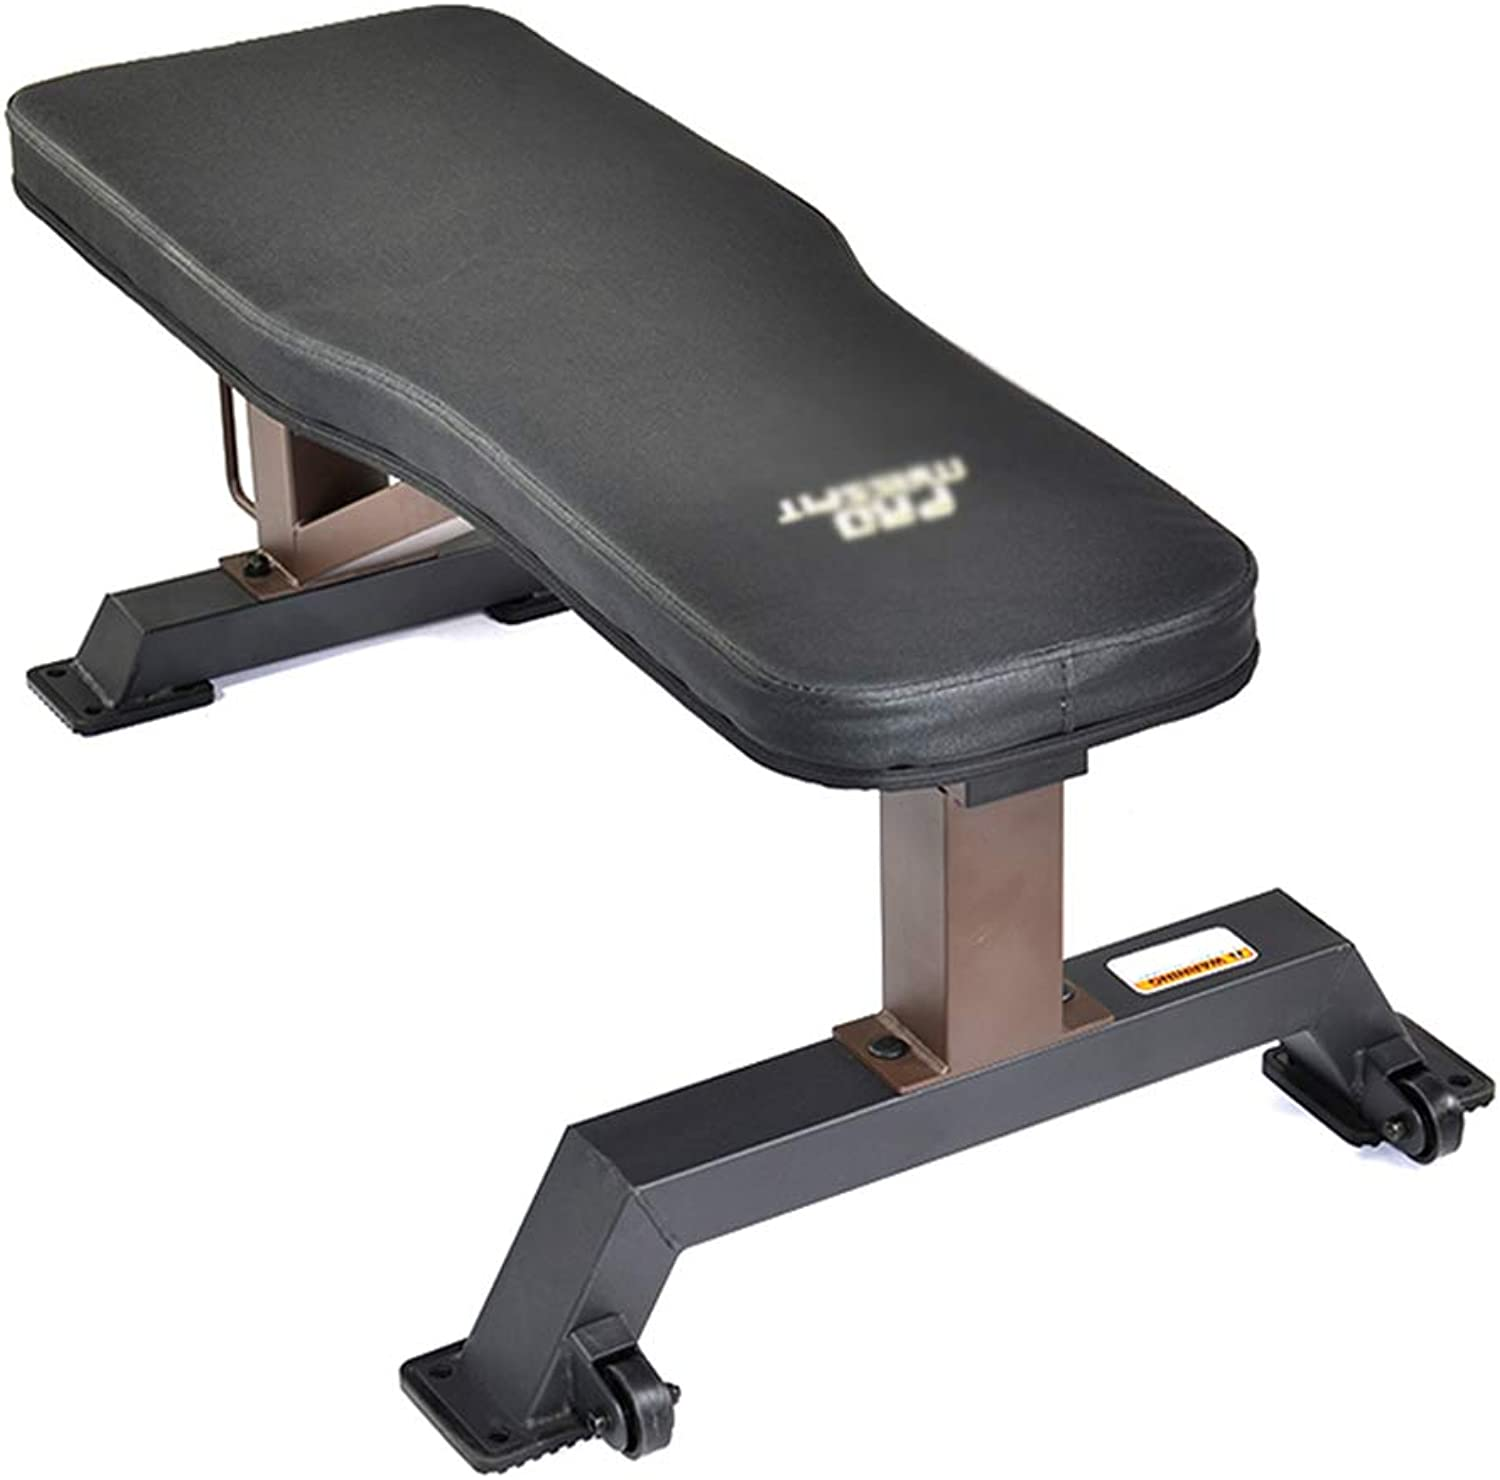 Folding Weight Table Commercial Dumbbell Flat Bench Bench Press Dumbbell Bench Personal Training Training Bench Fitness Bench Dumbbell Chair Benches